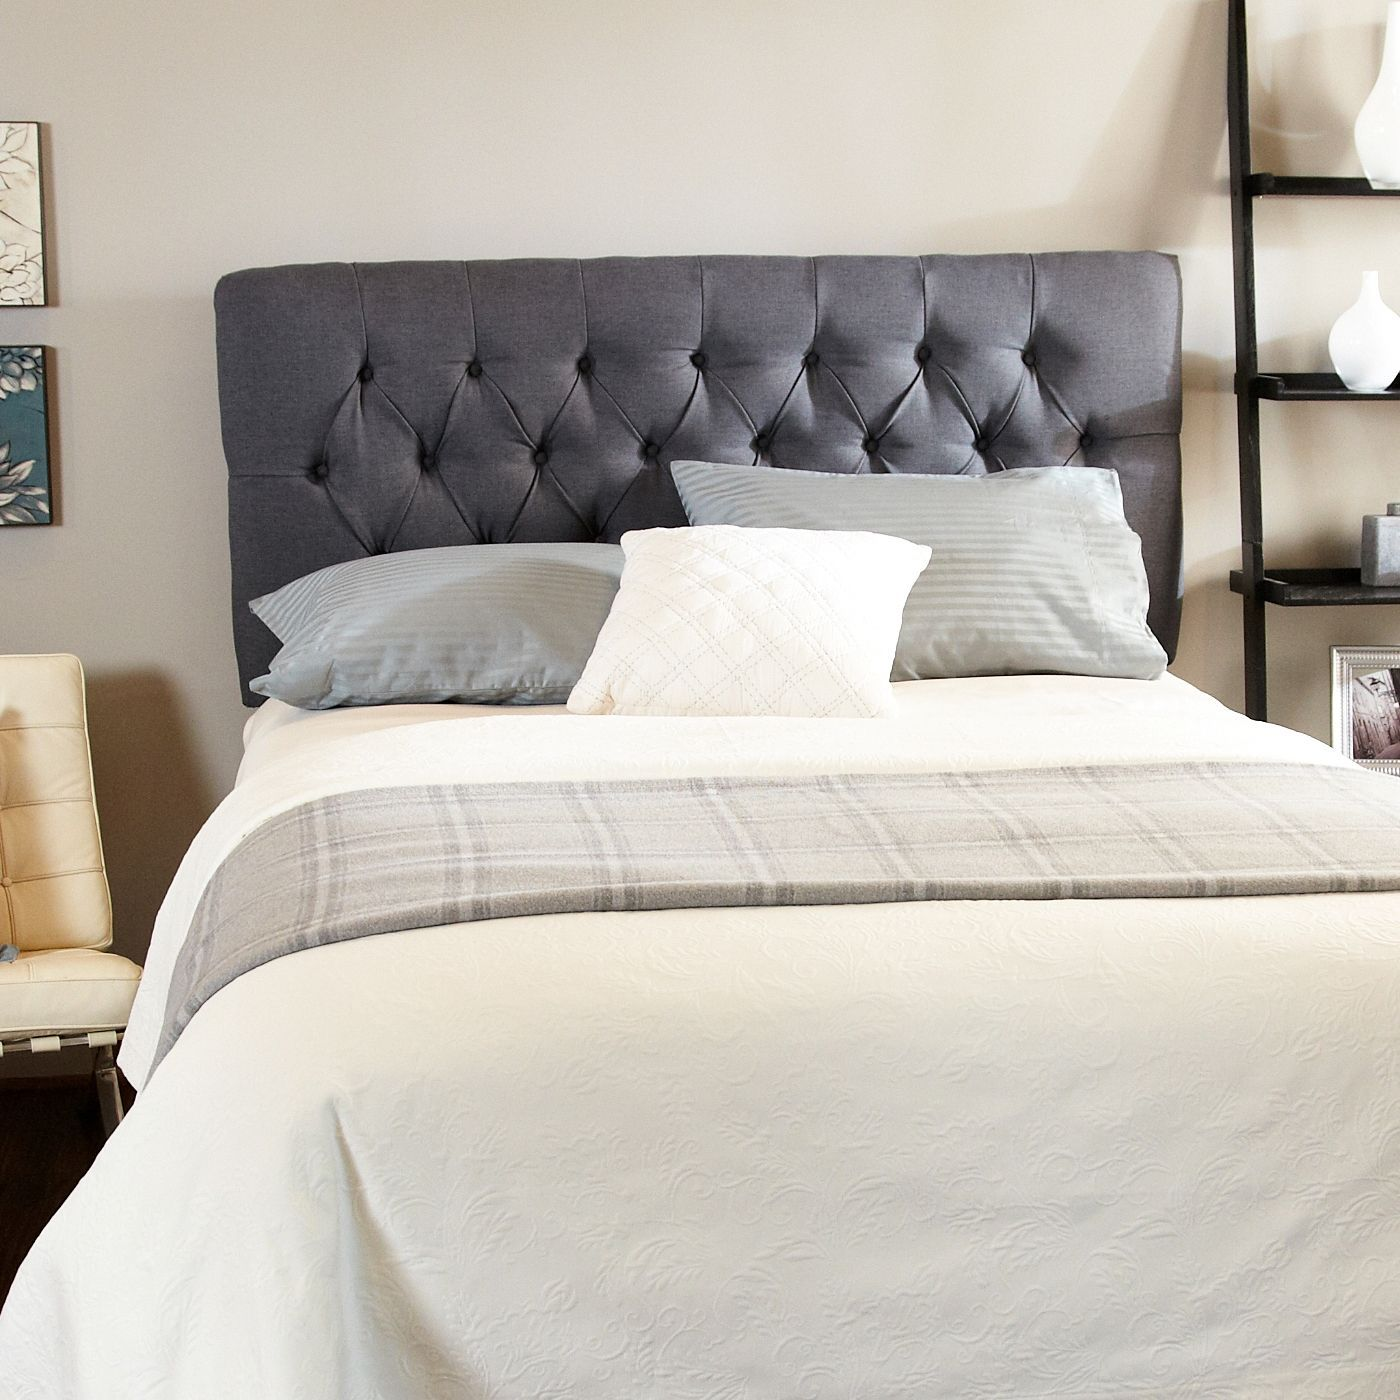 upgrade your bedroom decor with this stylish queen sized headboard